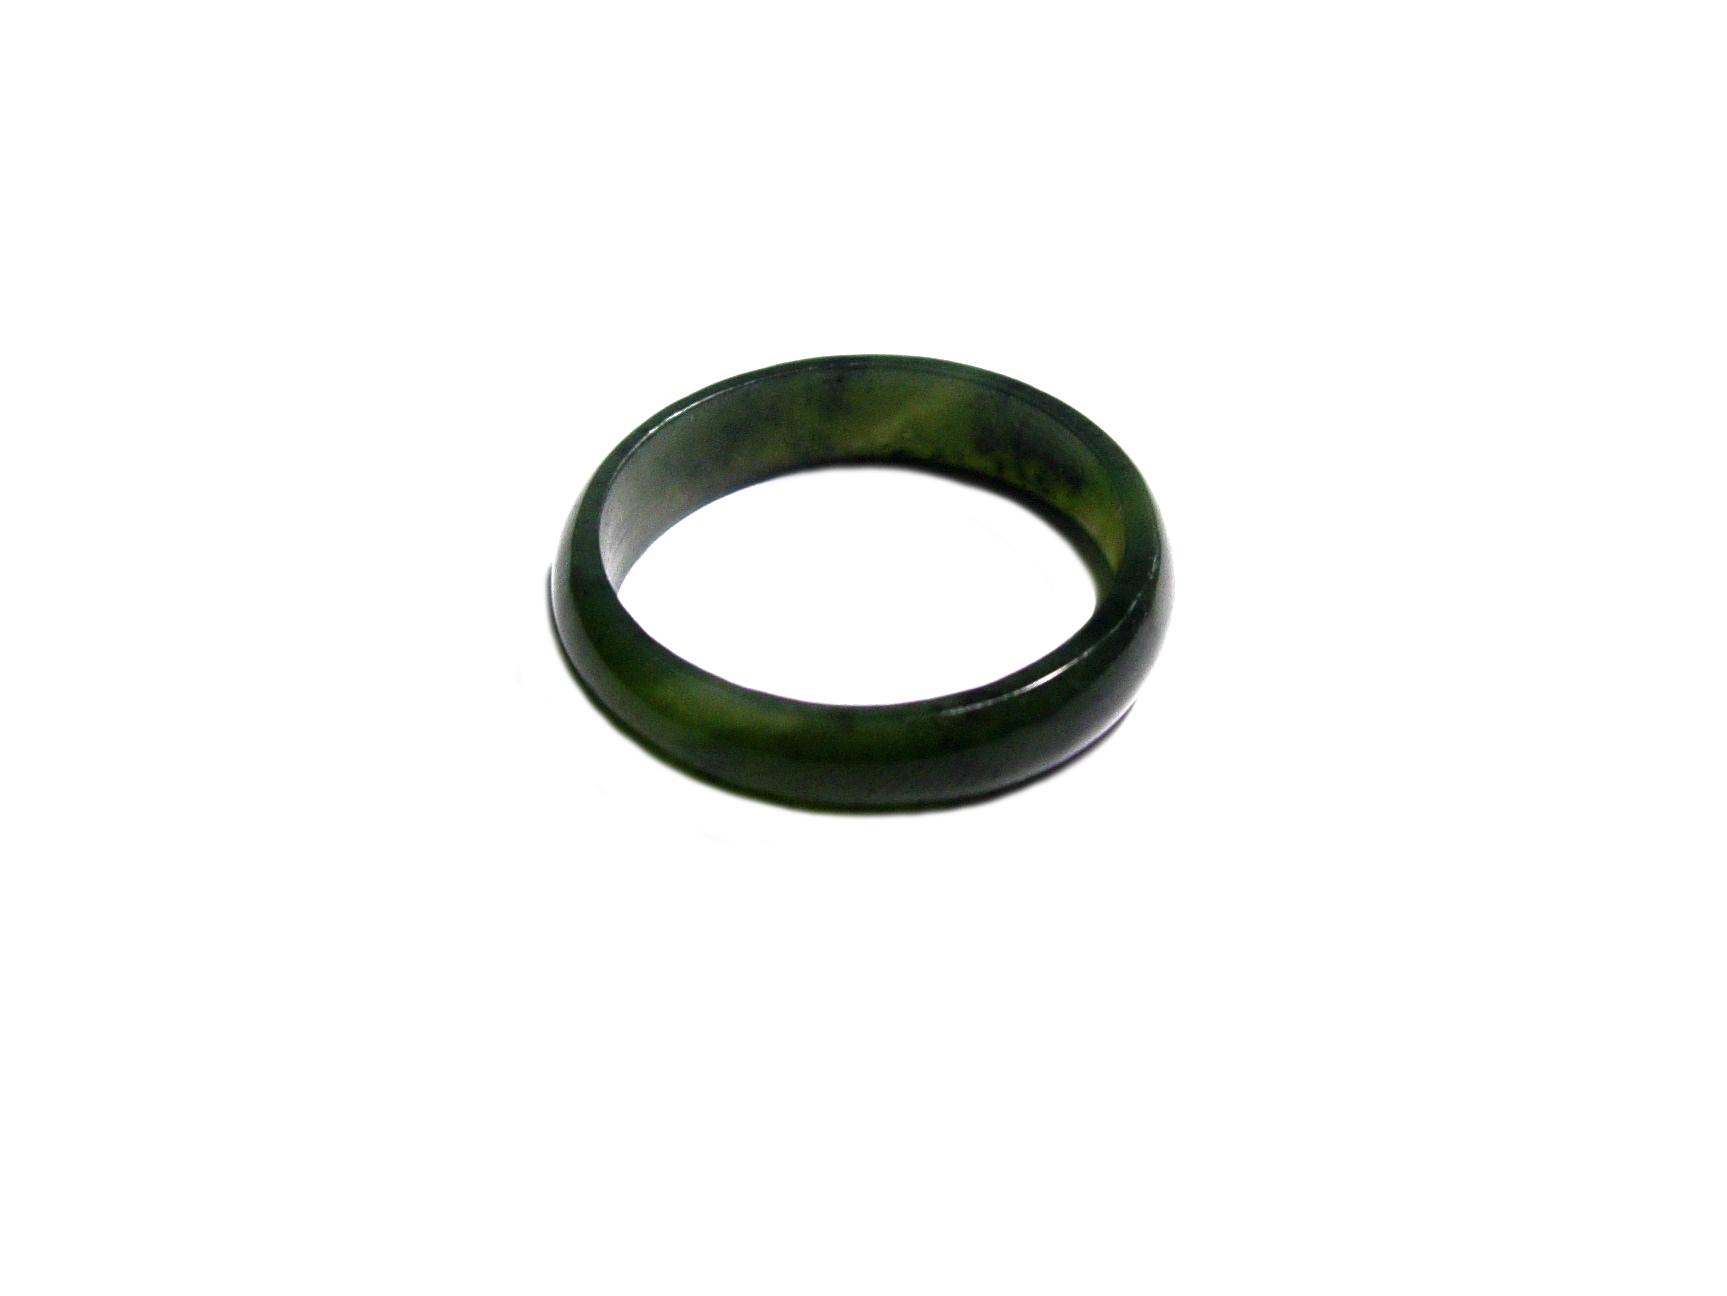 JADE 5MM BAND RING – SIZE US9.5 (19.41mm)